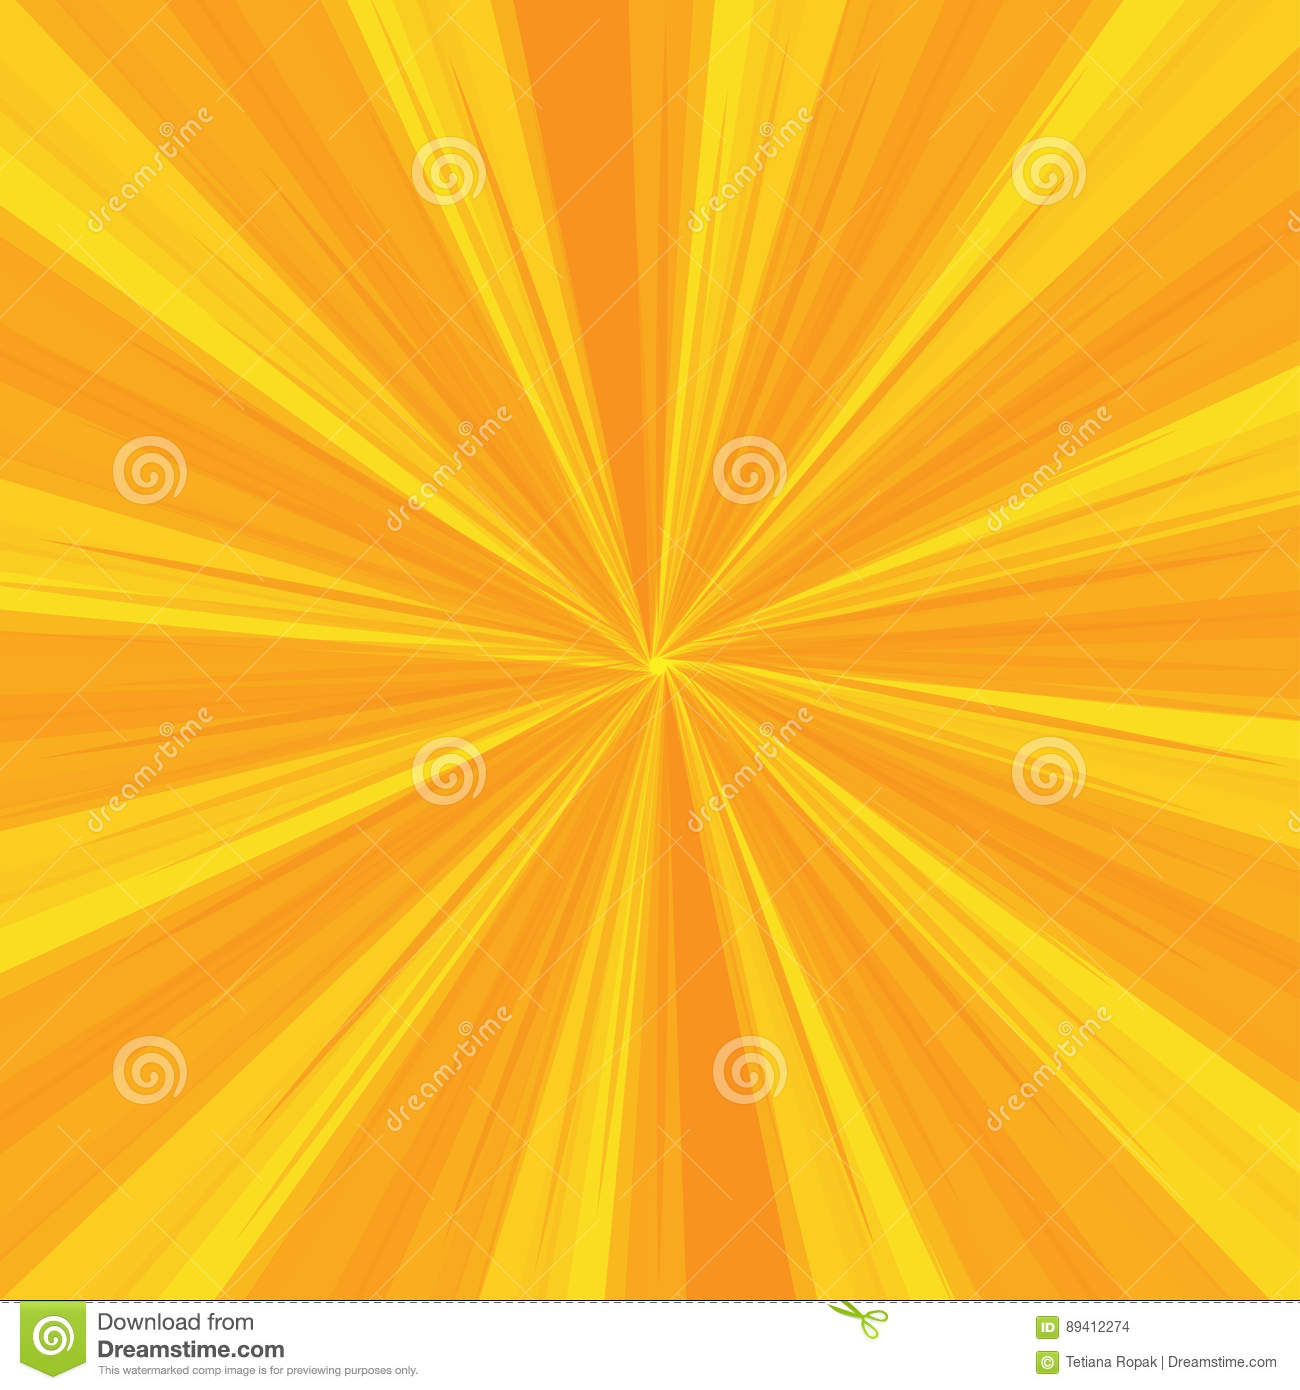 Rays Pattern With Yellow Light Burst Stripes. Sun Ray.Abstract ... for Yellow Light Rays Background  557ylc